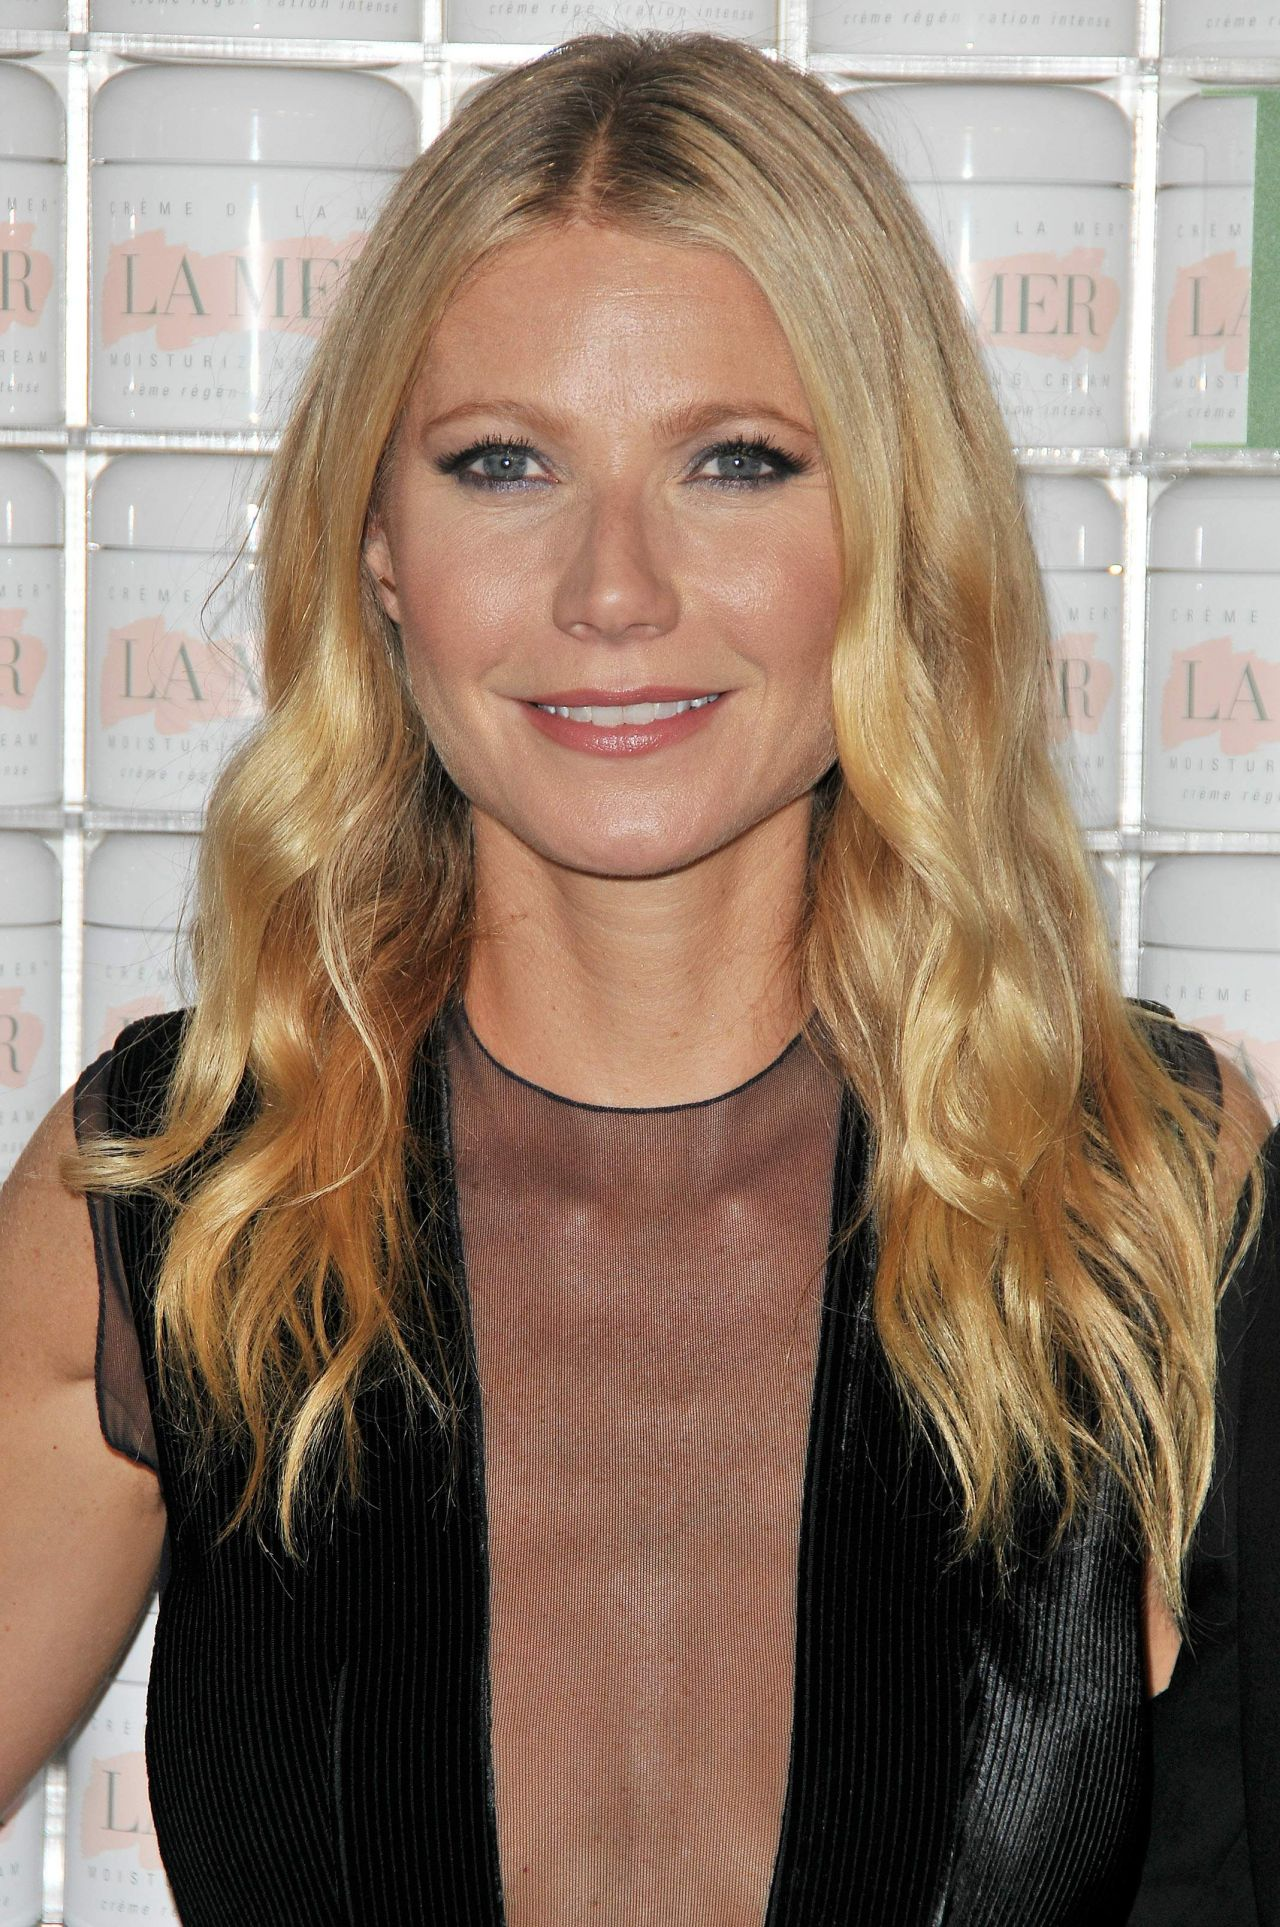 Gwyneth Paltrow – La Mer Celebration of an Icon Global ... Gwyneth Paltrow